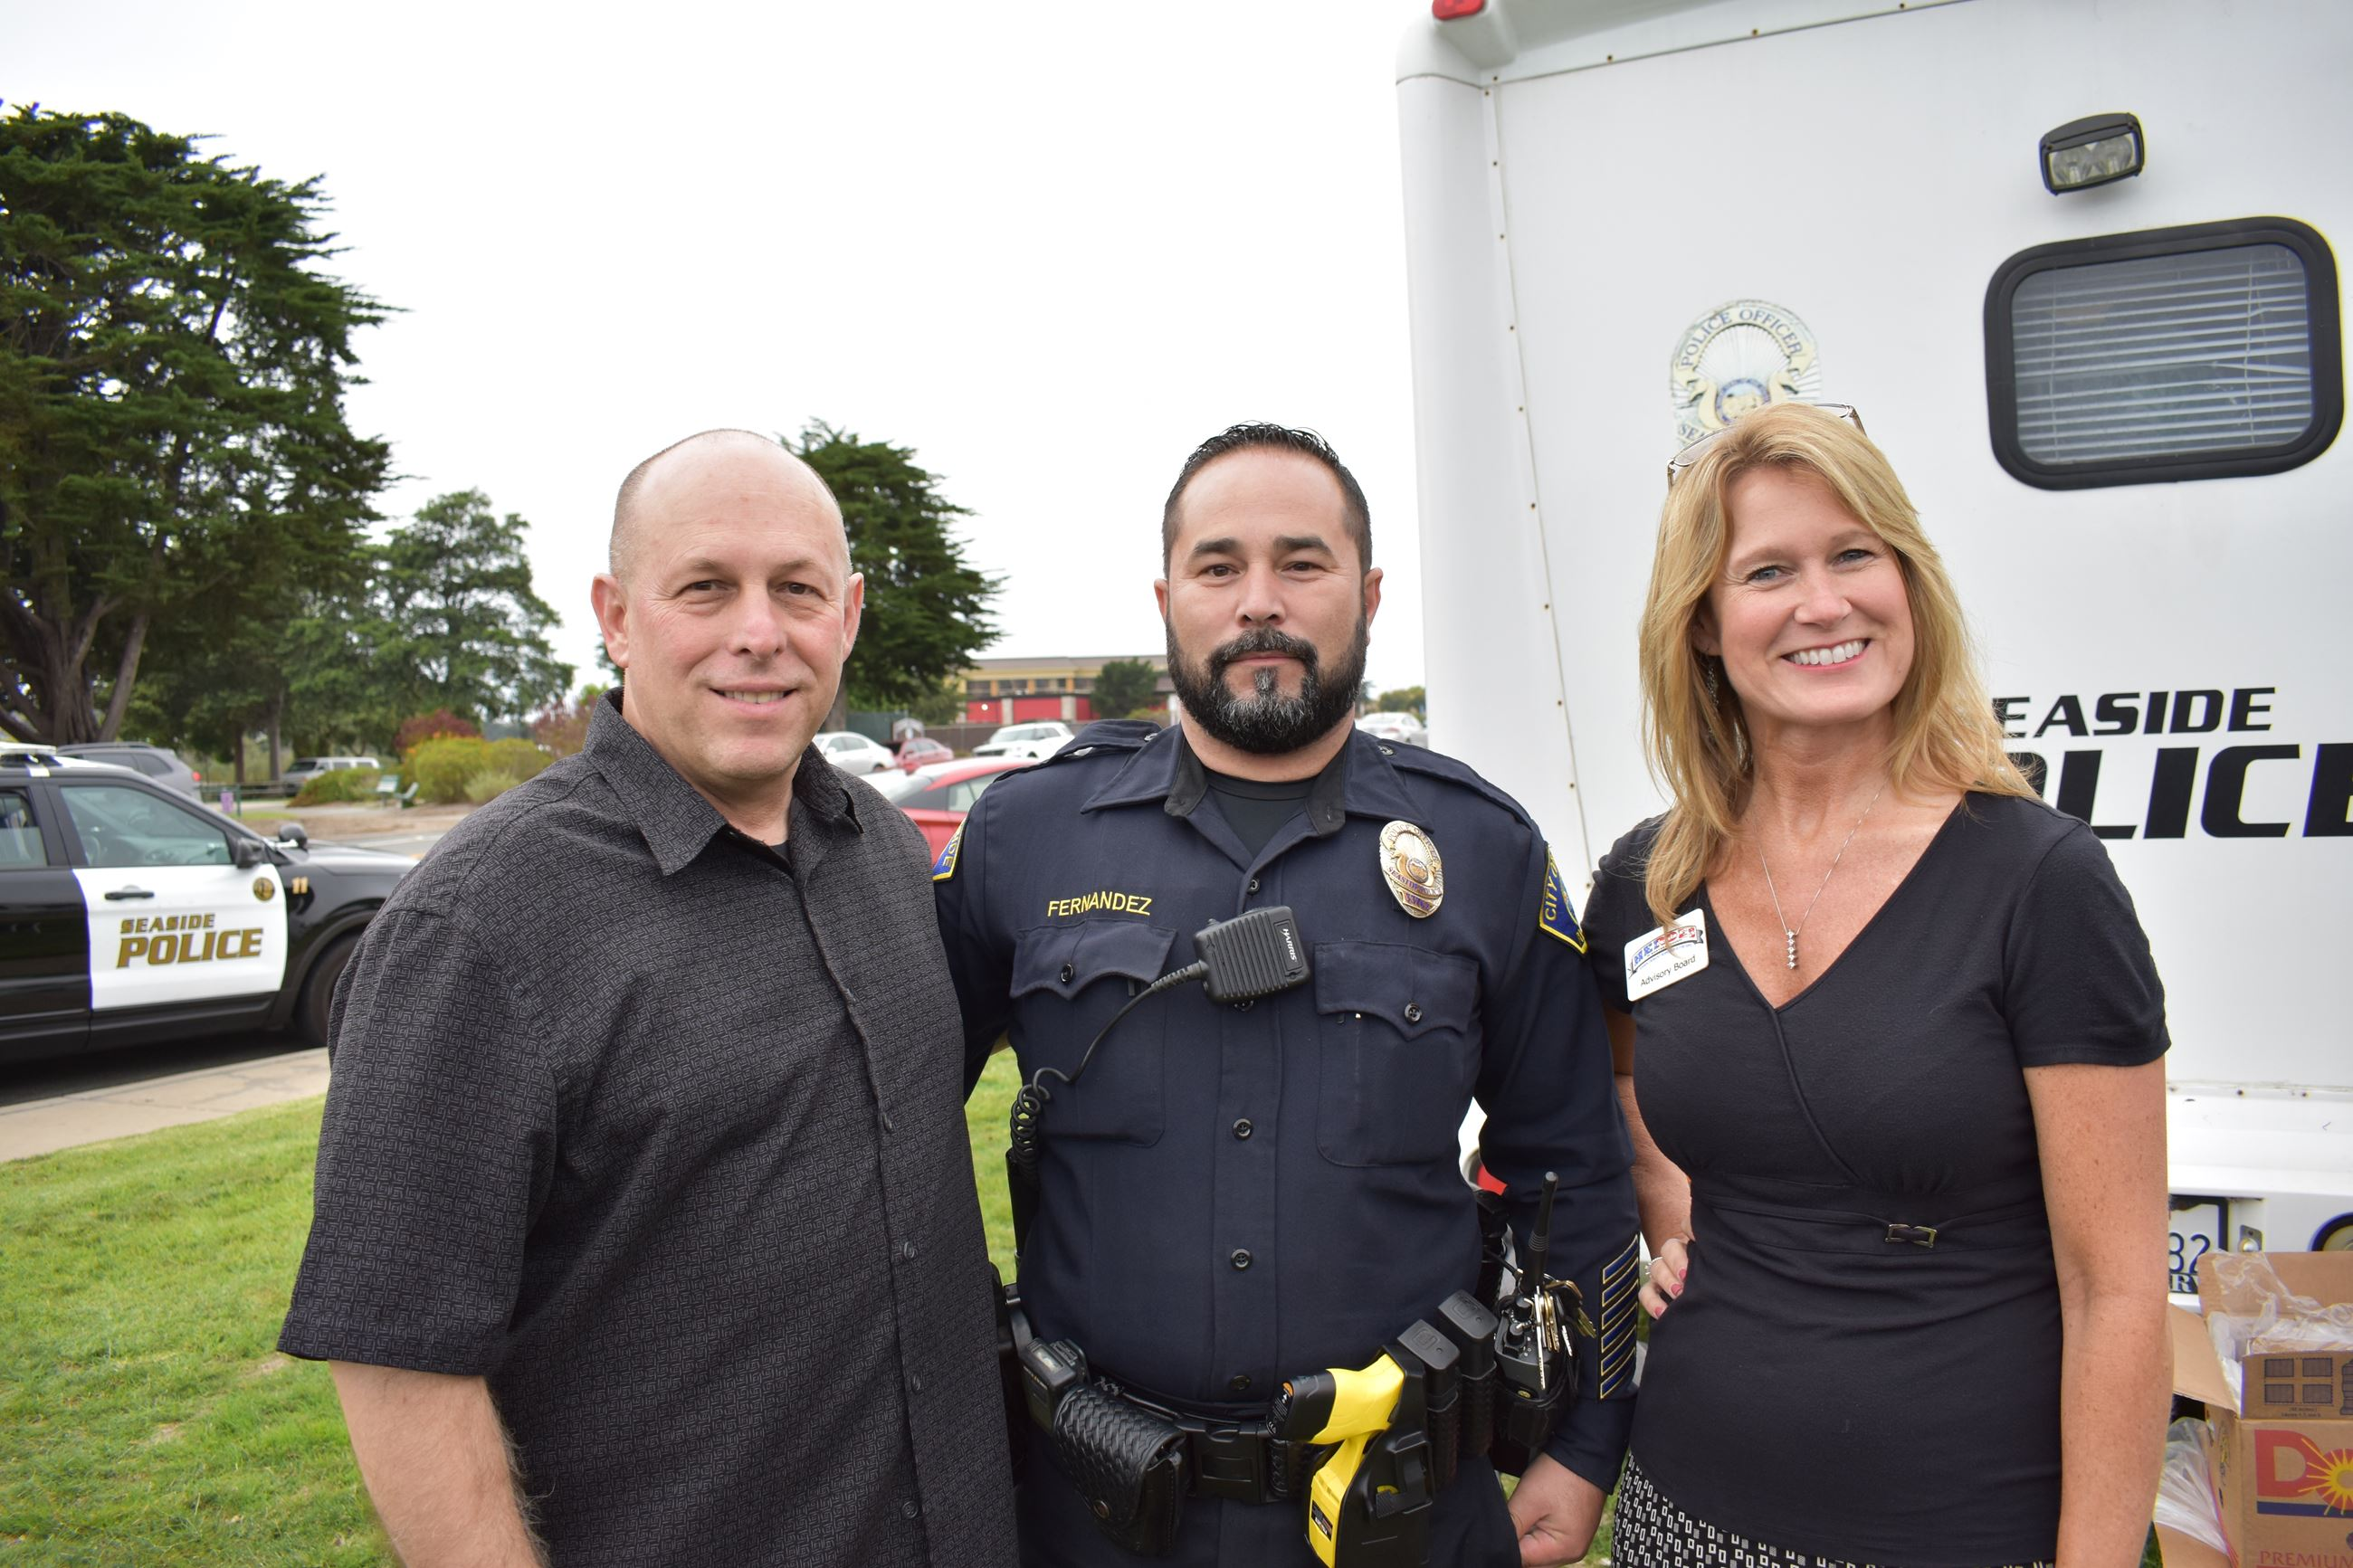 Officer and attendees at National Night Out event